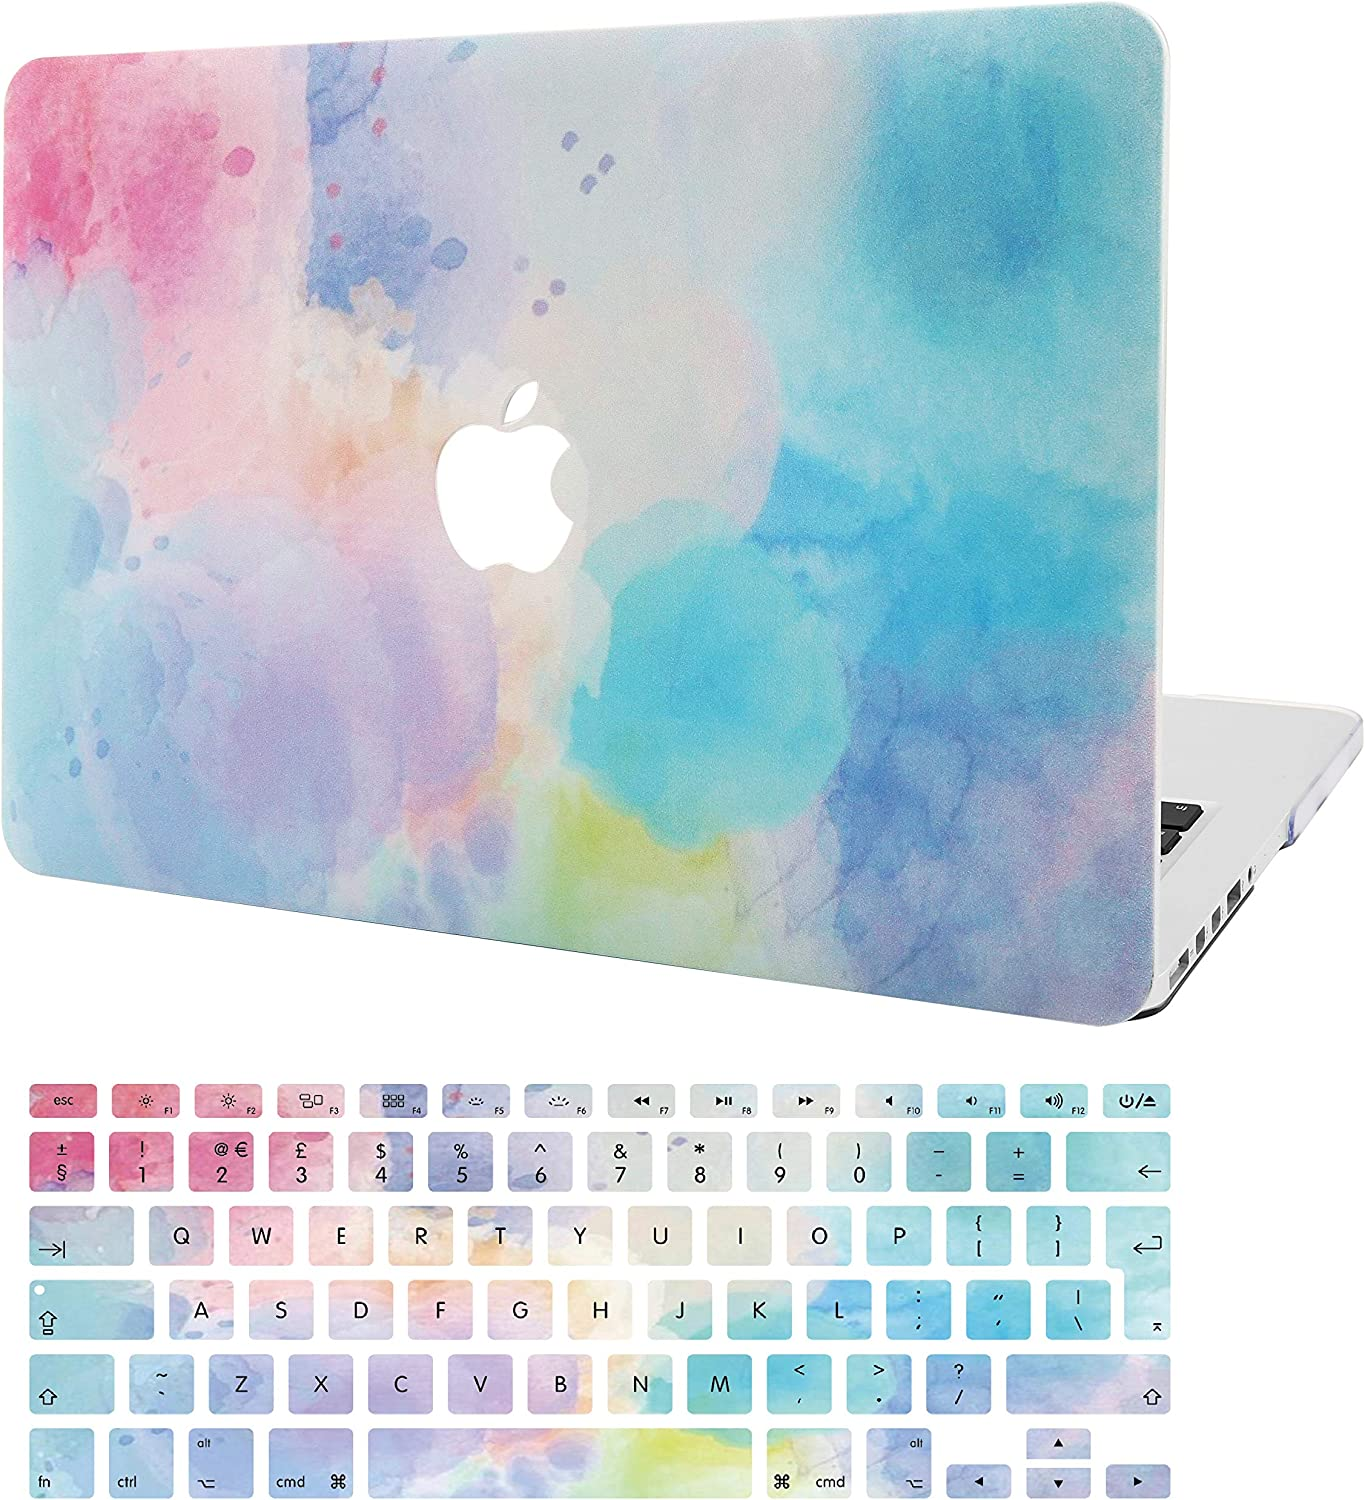 "KECC Laptop Case for MacBook Pro 13"" (2020/2019/2018/2017/2016) w/Keyboard Cover Plastic Hard Shell A2159/A1989/A1706/A1708 Touch Bar 2 in 1 Bundle (Rainbow Mist 2)"